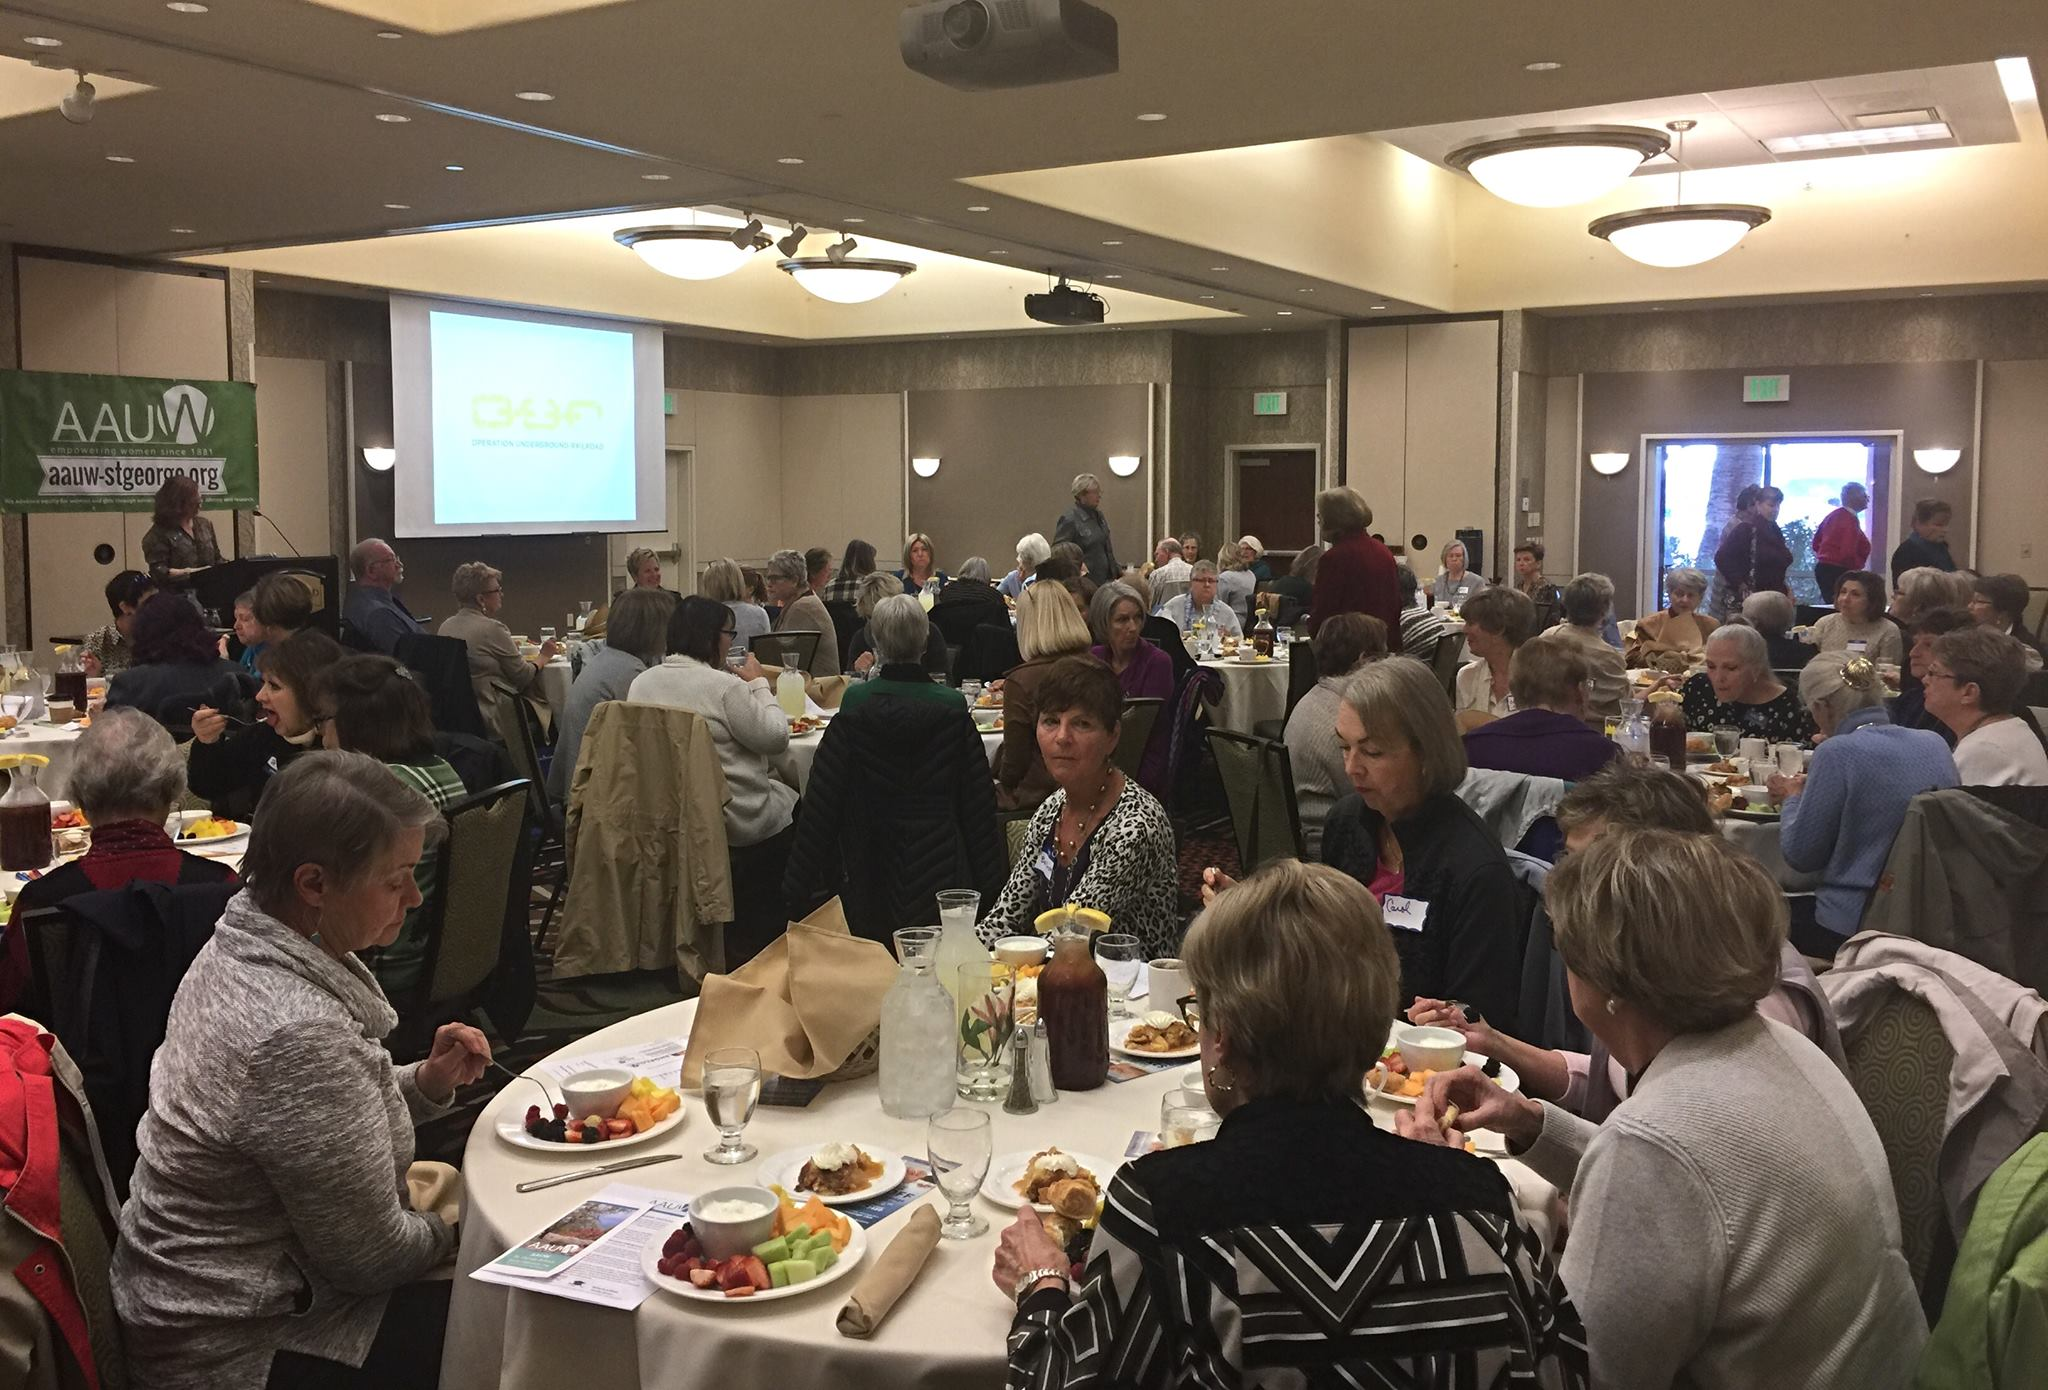 Members of the American Association of University Women gather at a luncheon to discuss some of the issues of human trafficking, St. George, Utah, Jan. 9, 2017 | Photo by Kimberly Scott, St. George News